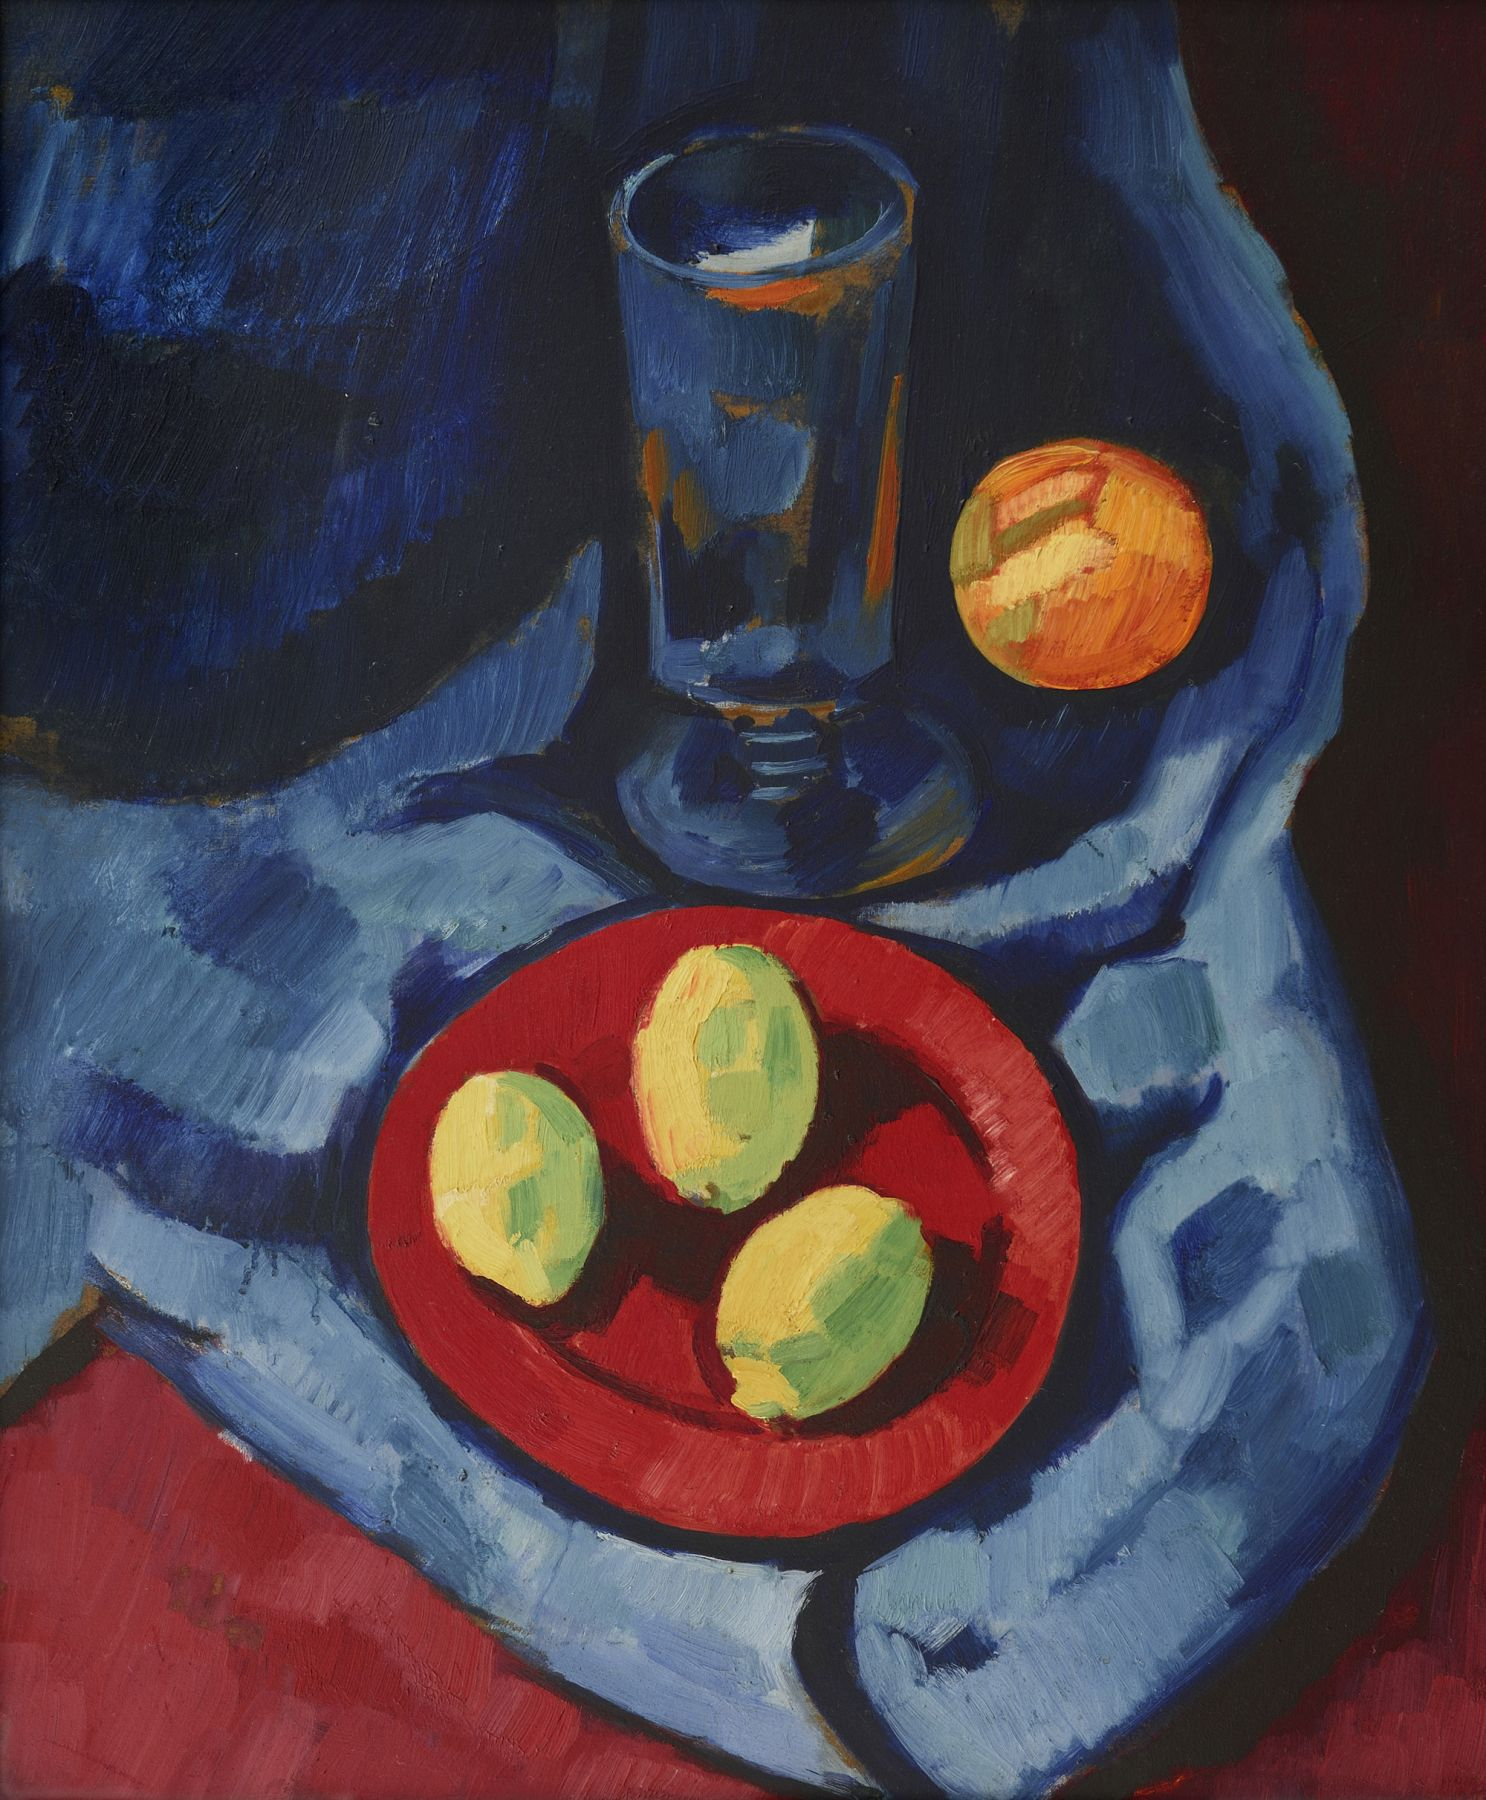 marsden hartley, Still Life with Lemons (Fruit and Tumbler), 1928, oil on composition board, 23 7/8 x 19 5/8 inches